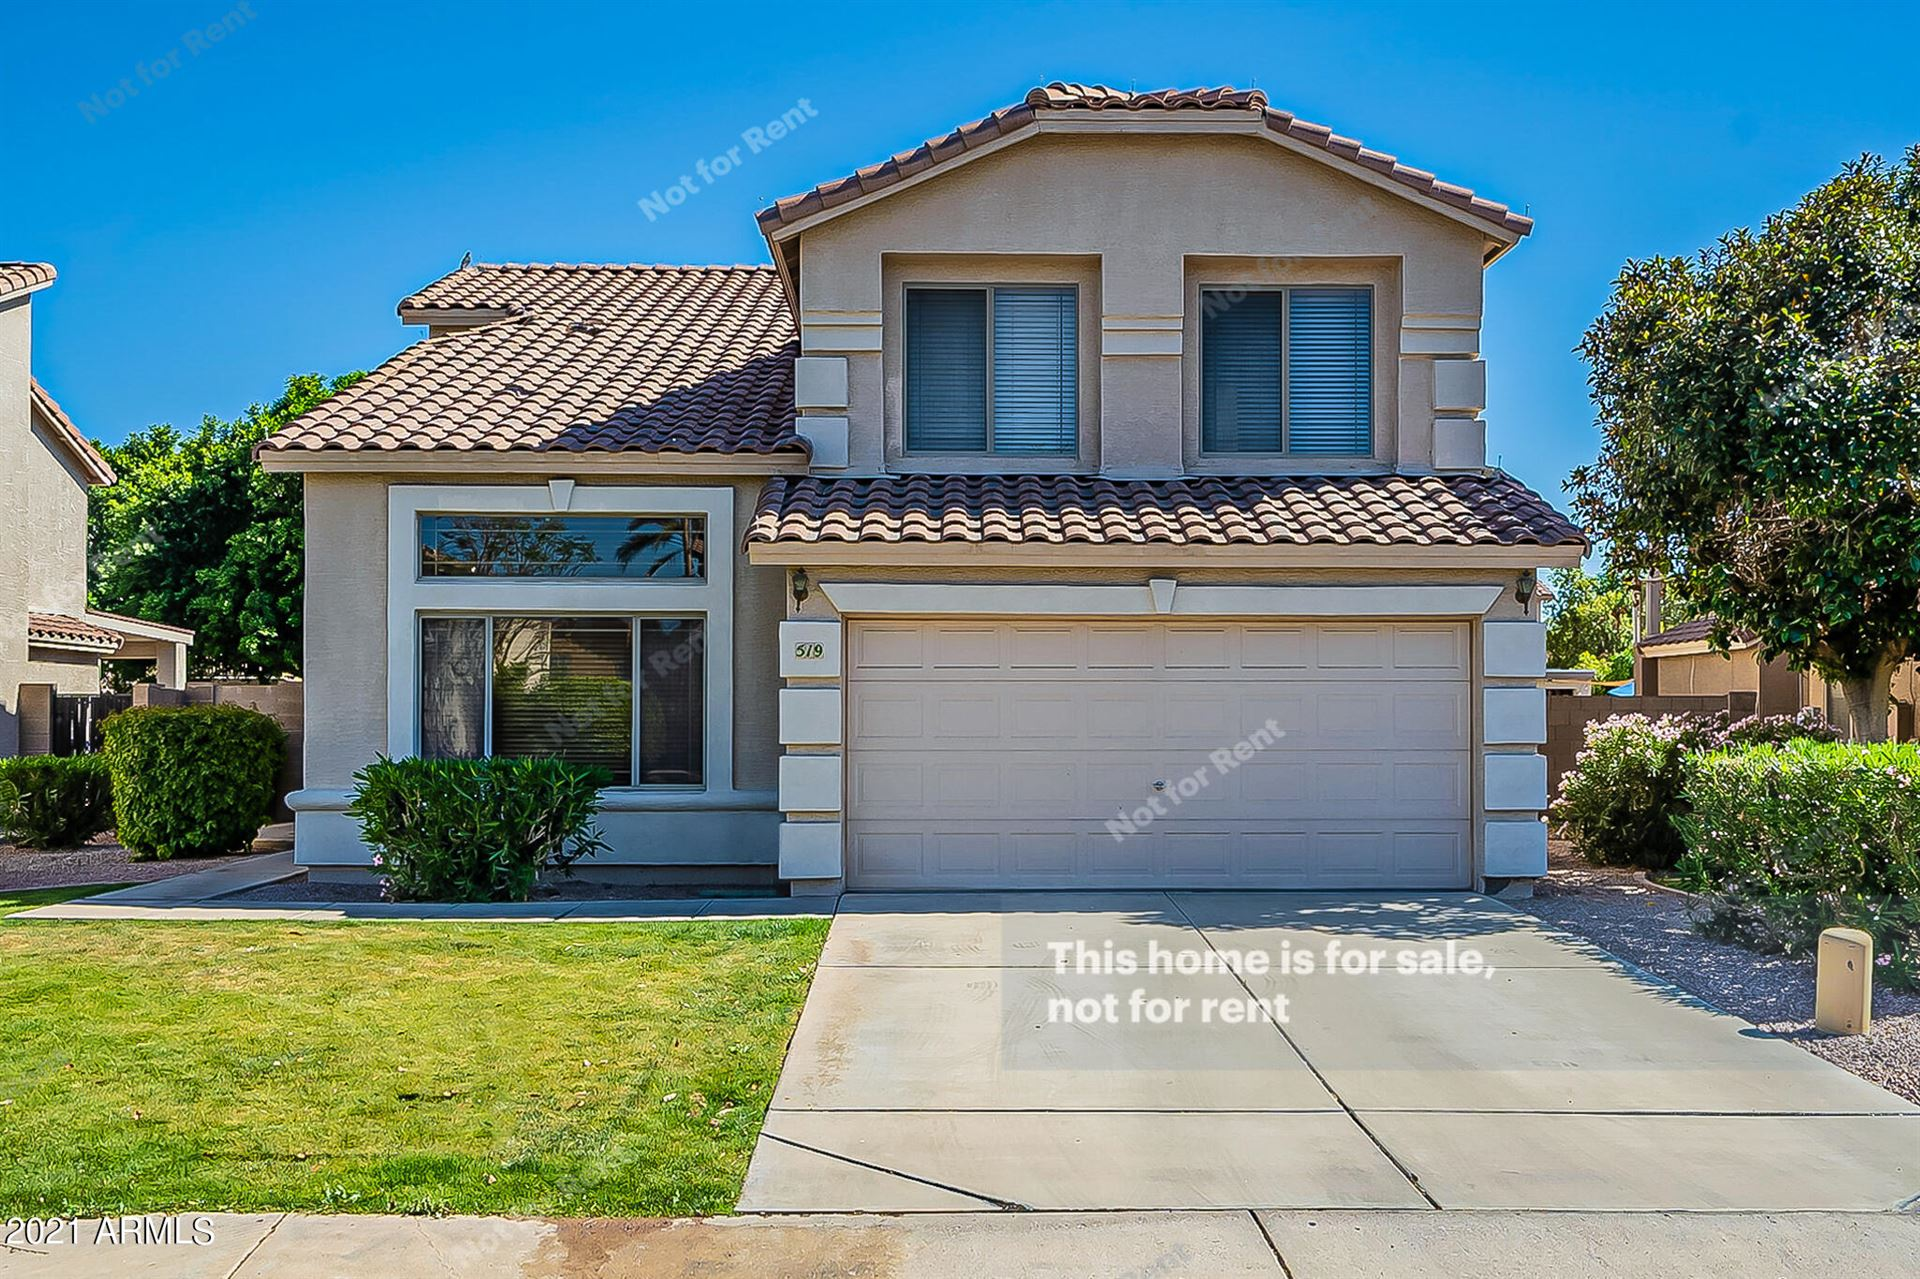 519 W SCOTT Avenue, Gilbert, AZ 85233 - #: 6229130